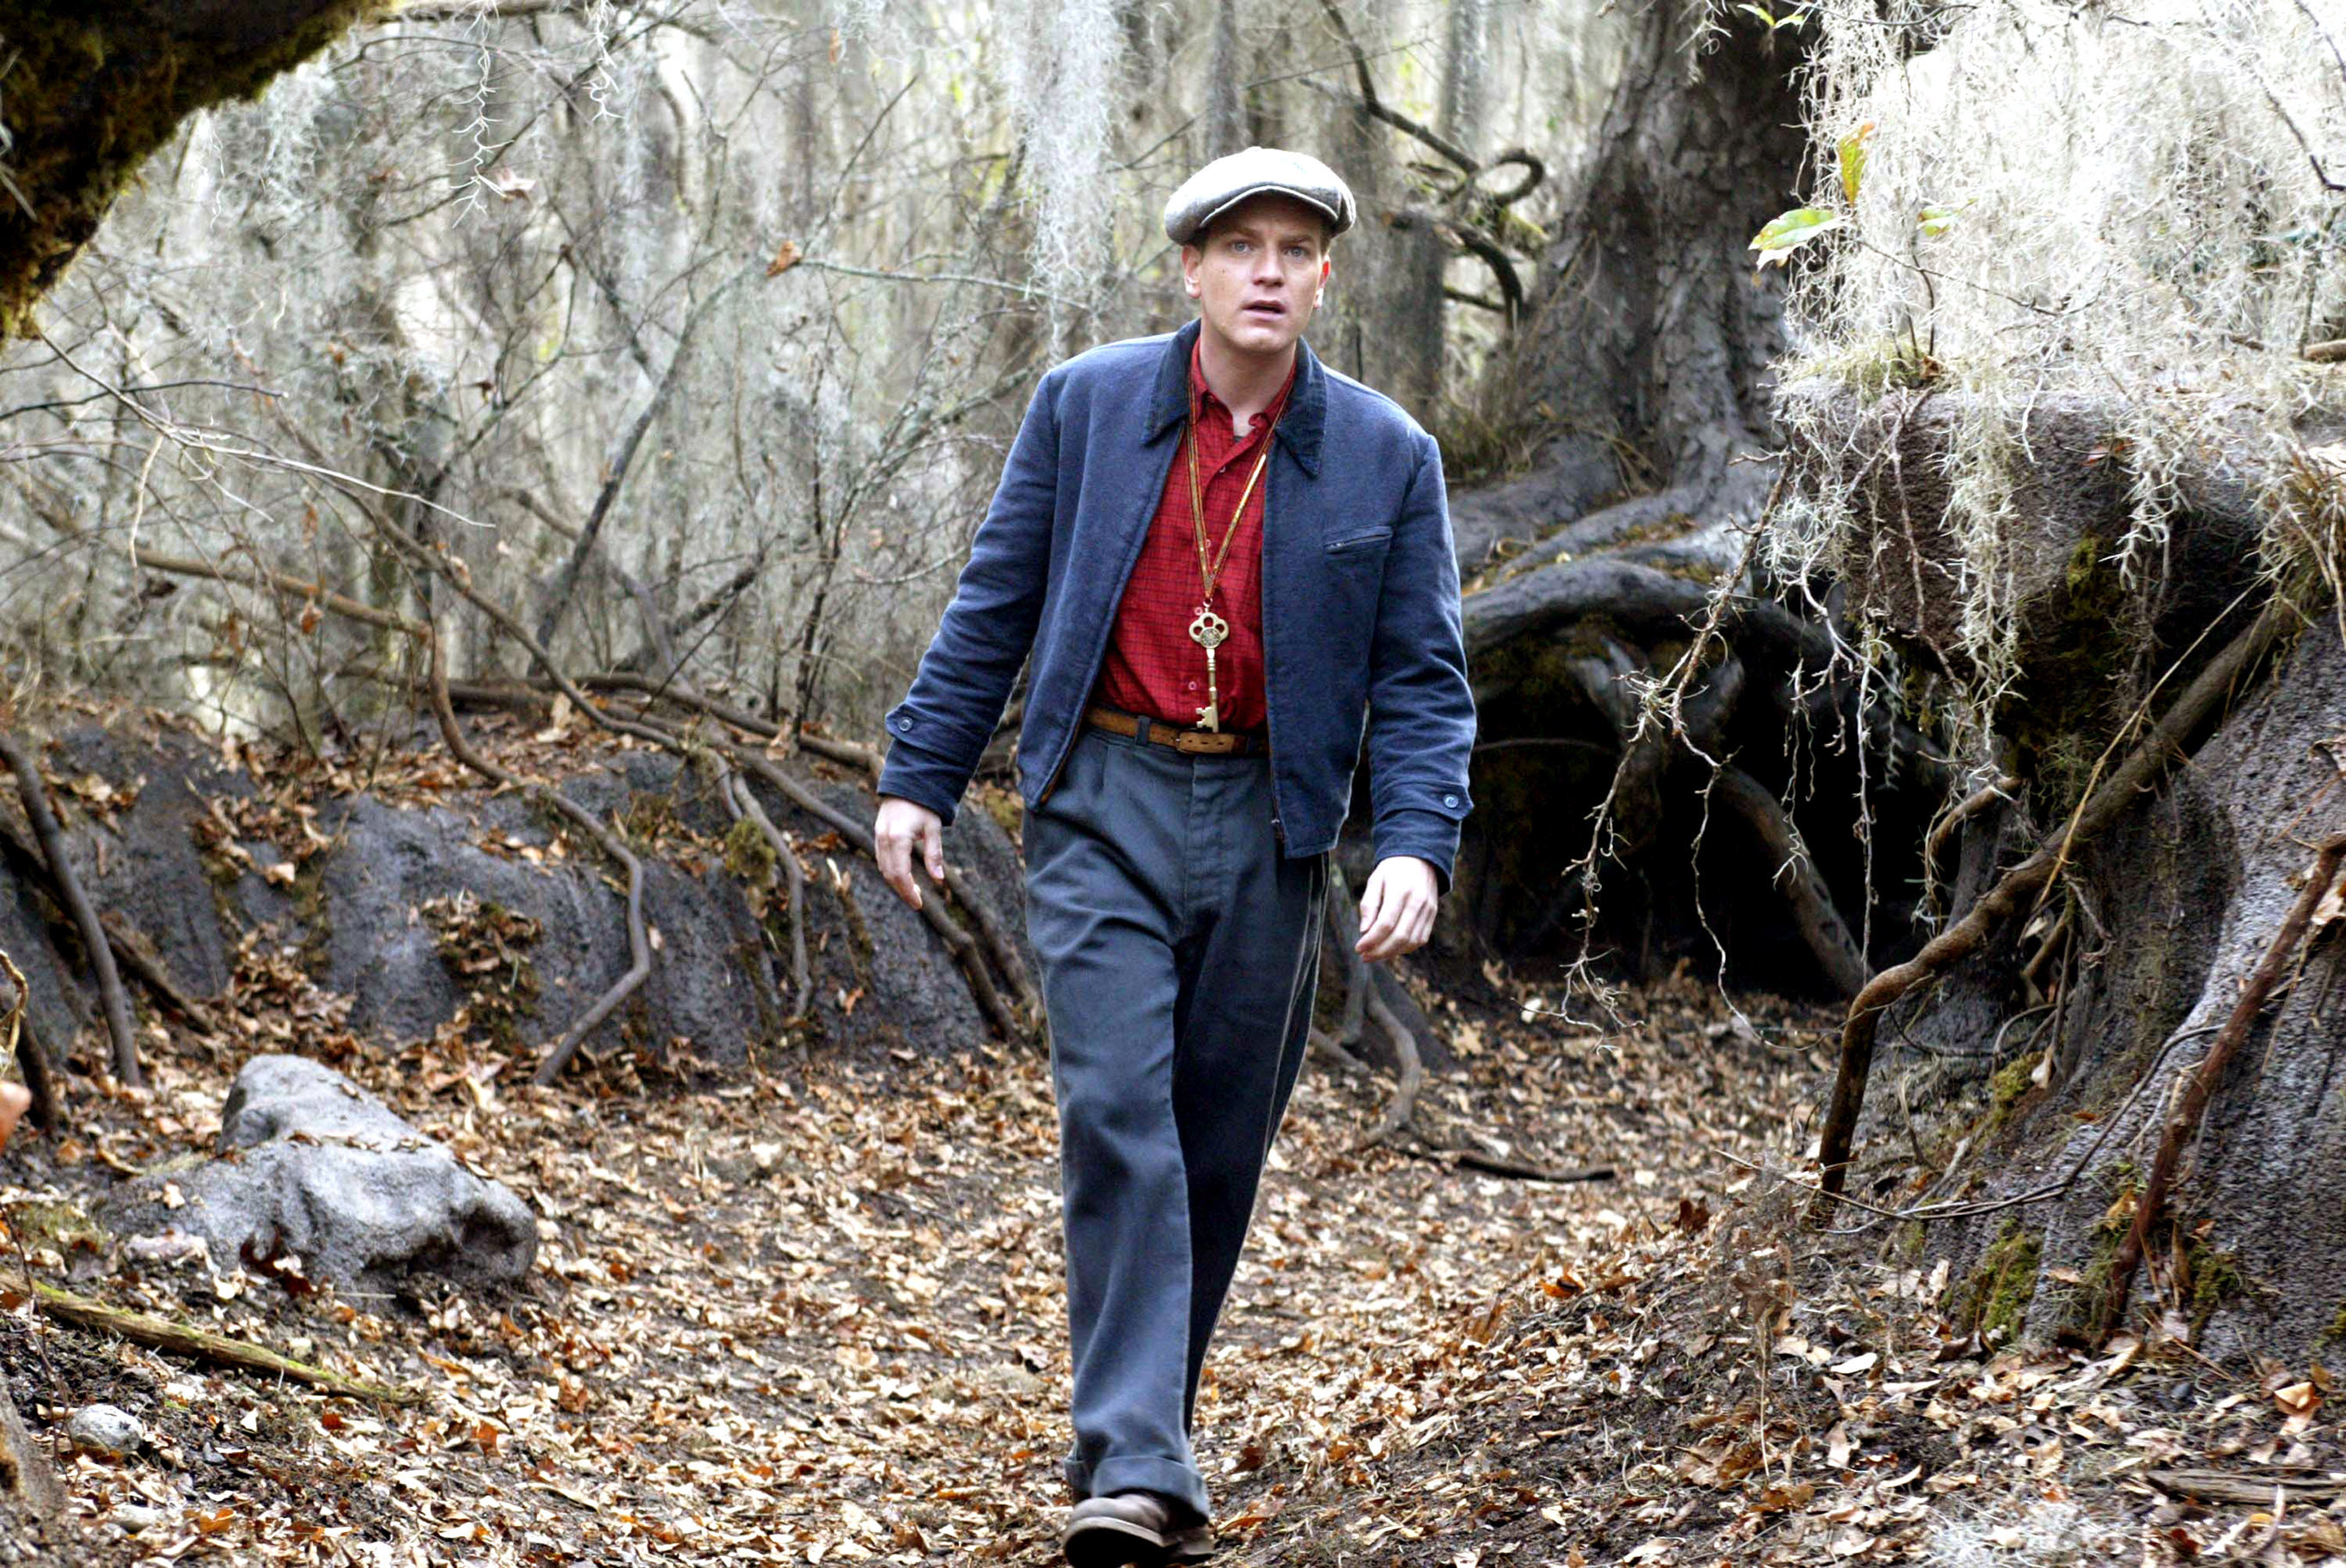 Ewan McGregor walking in the woods with a key around his neck